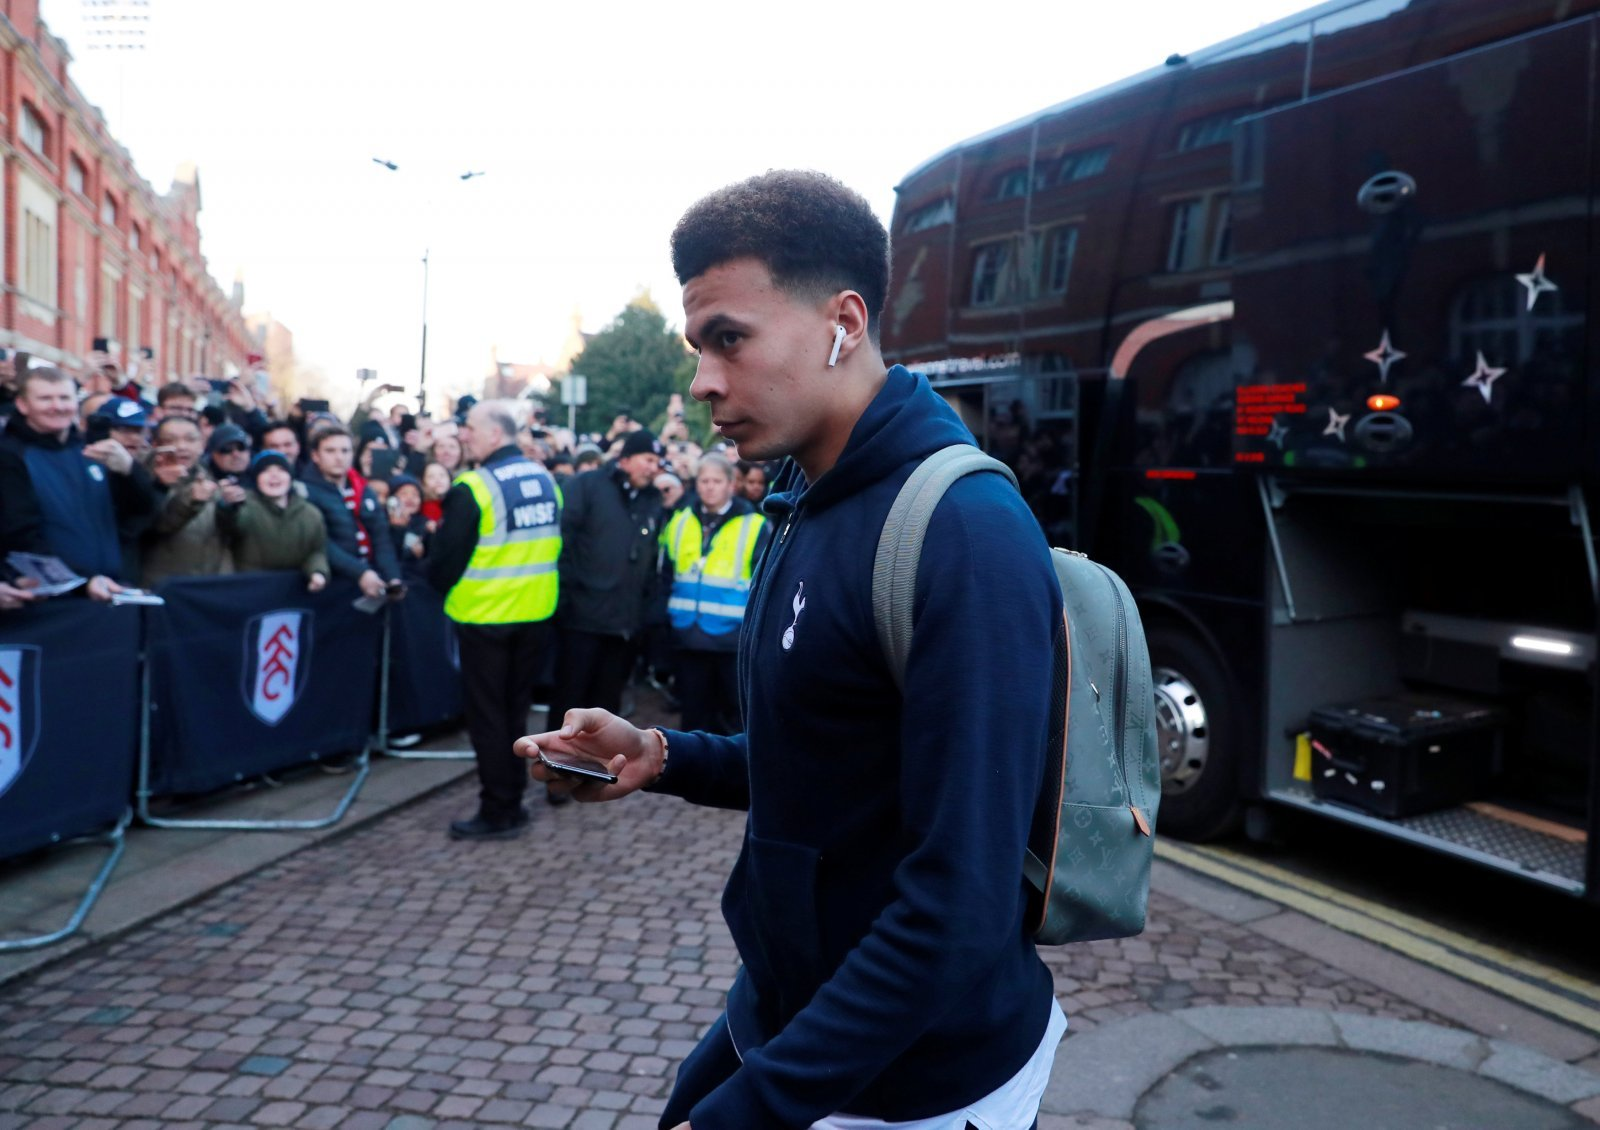 Tottenham Hotspur are missing Dele Alli's incisiveness in attack